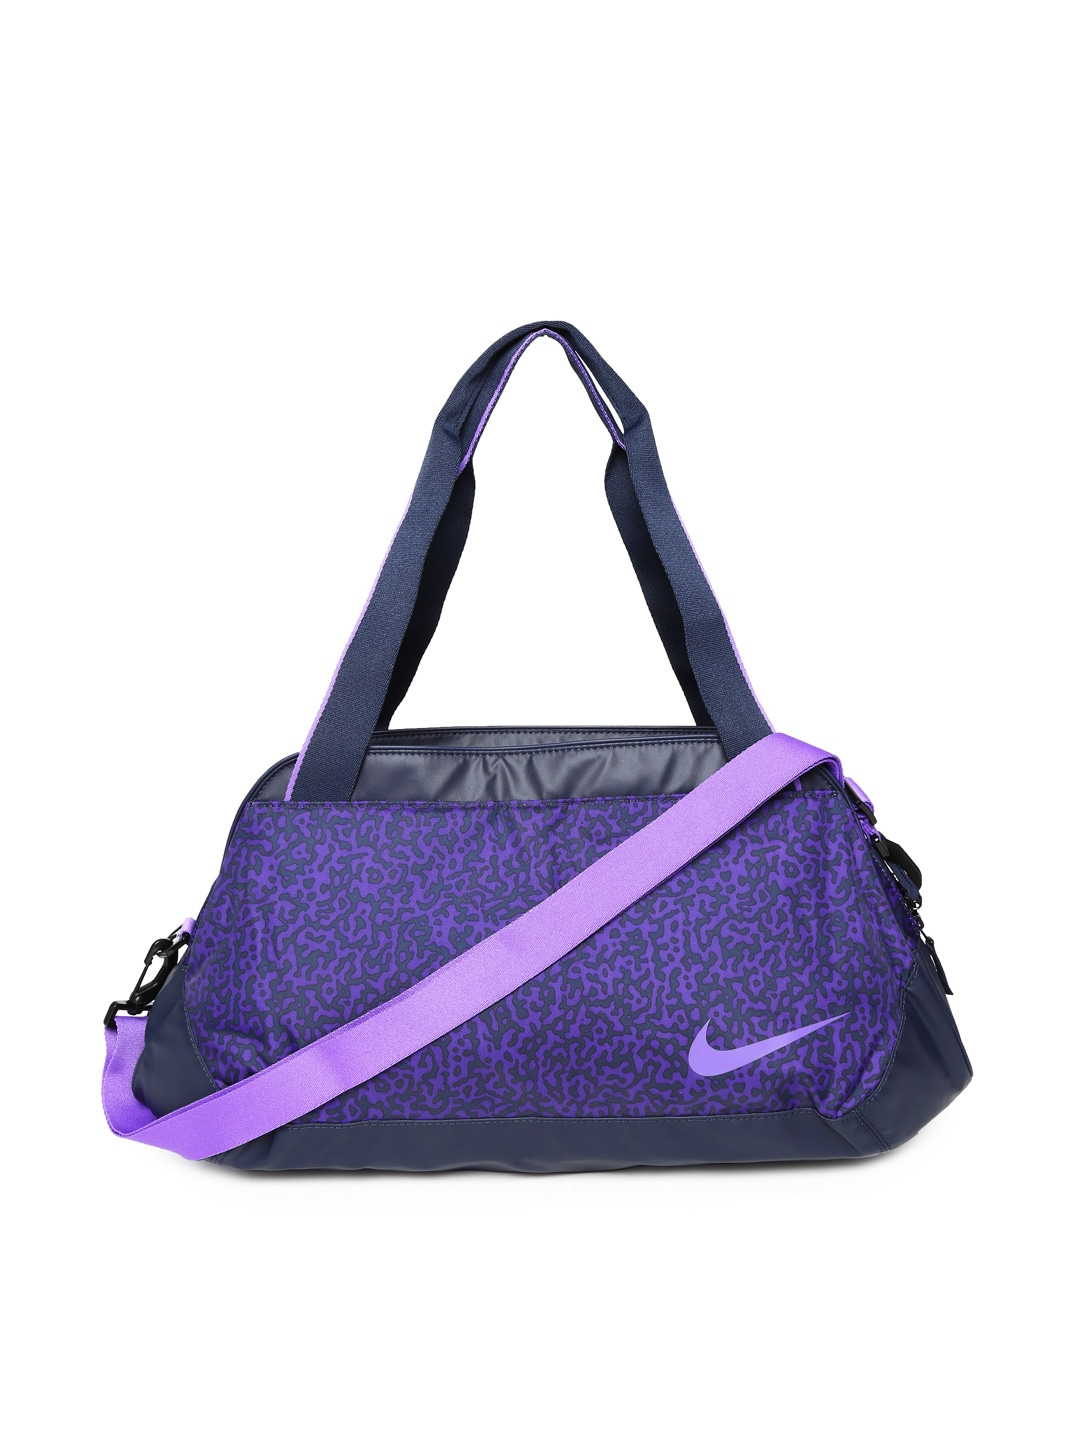 Nike ba4653-545 Handbags - Best Price in India   priceiq.in 1748bbf48a